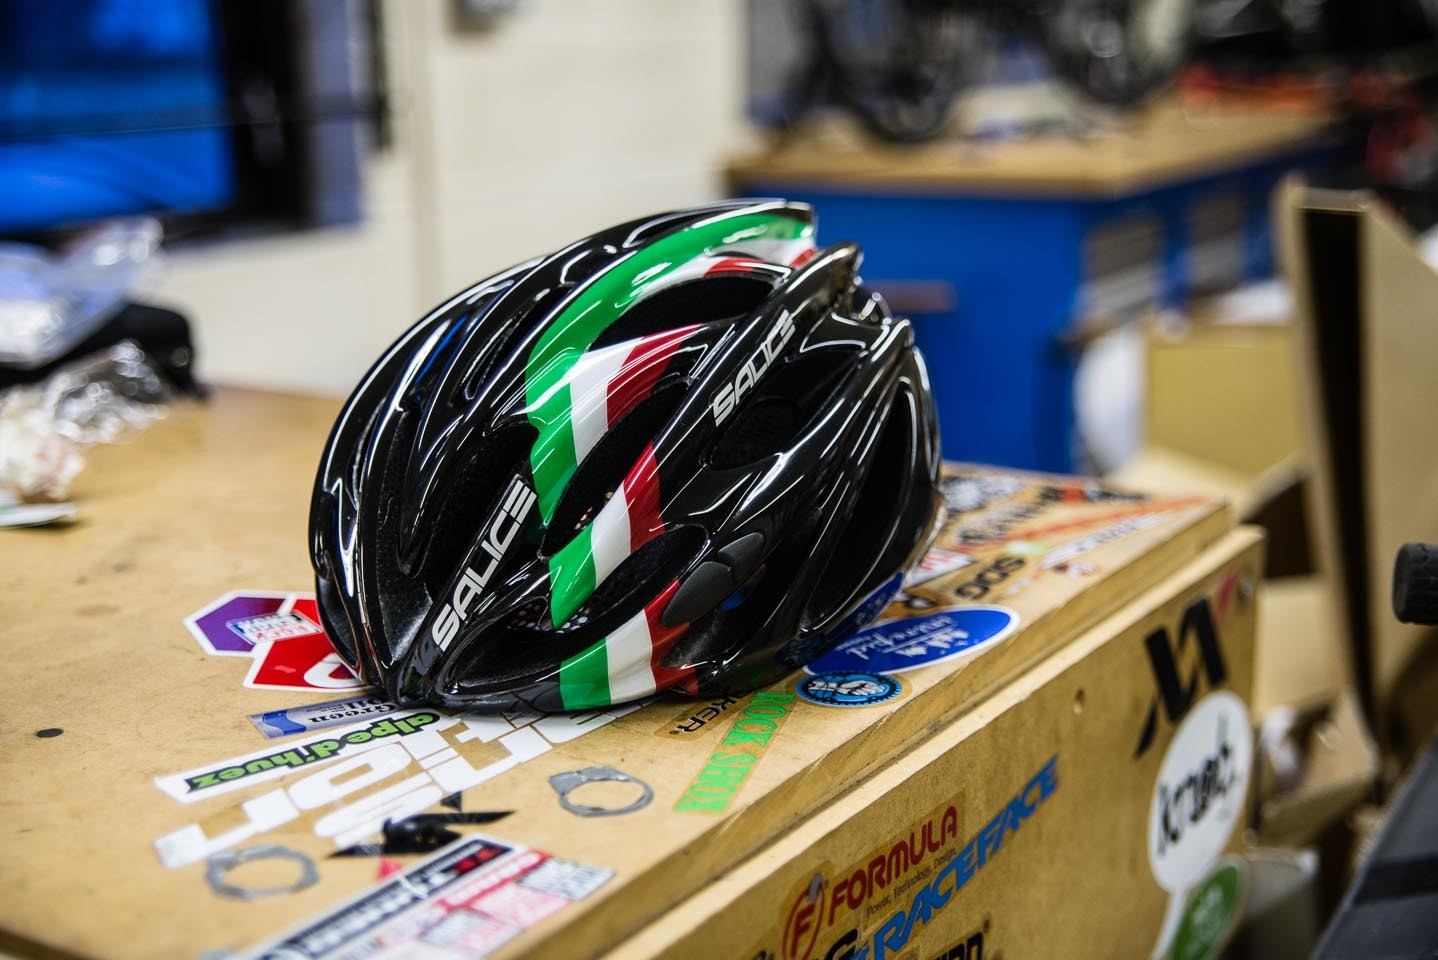 The Salice Bolt helmet with integrated rear light